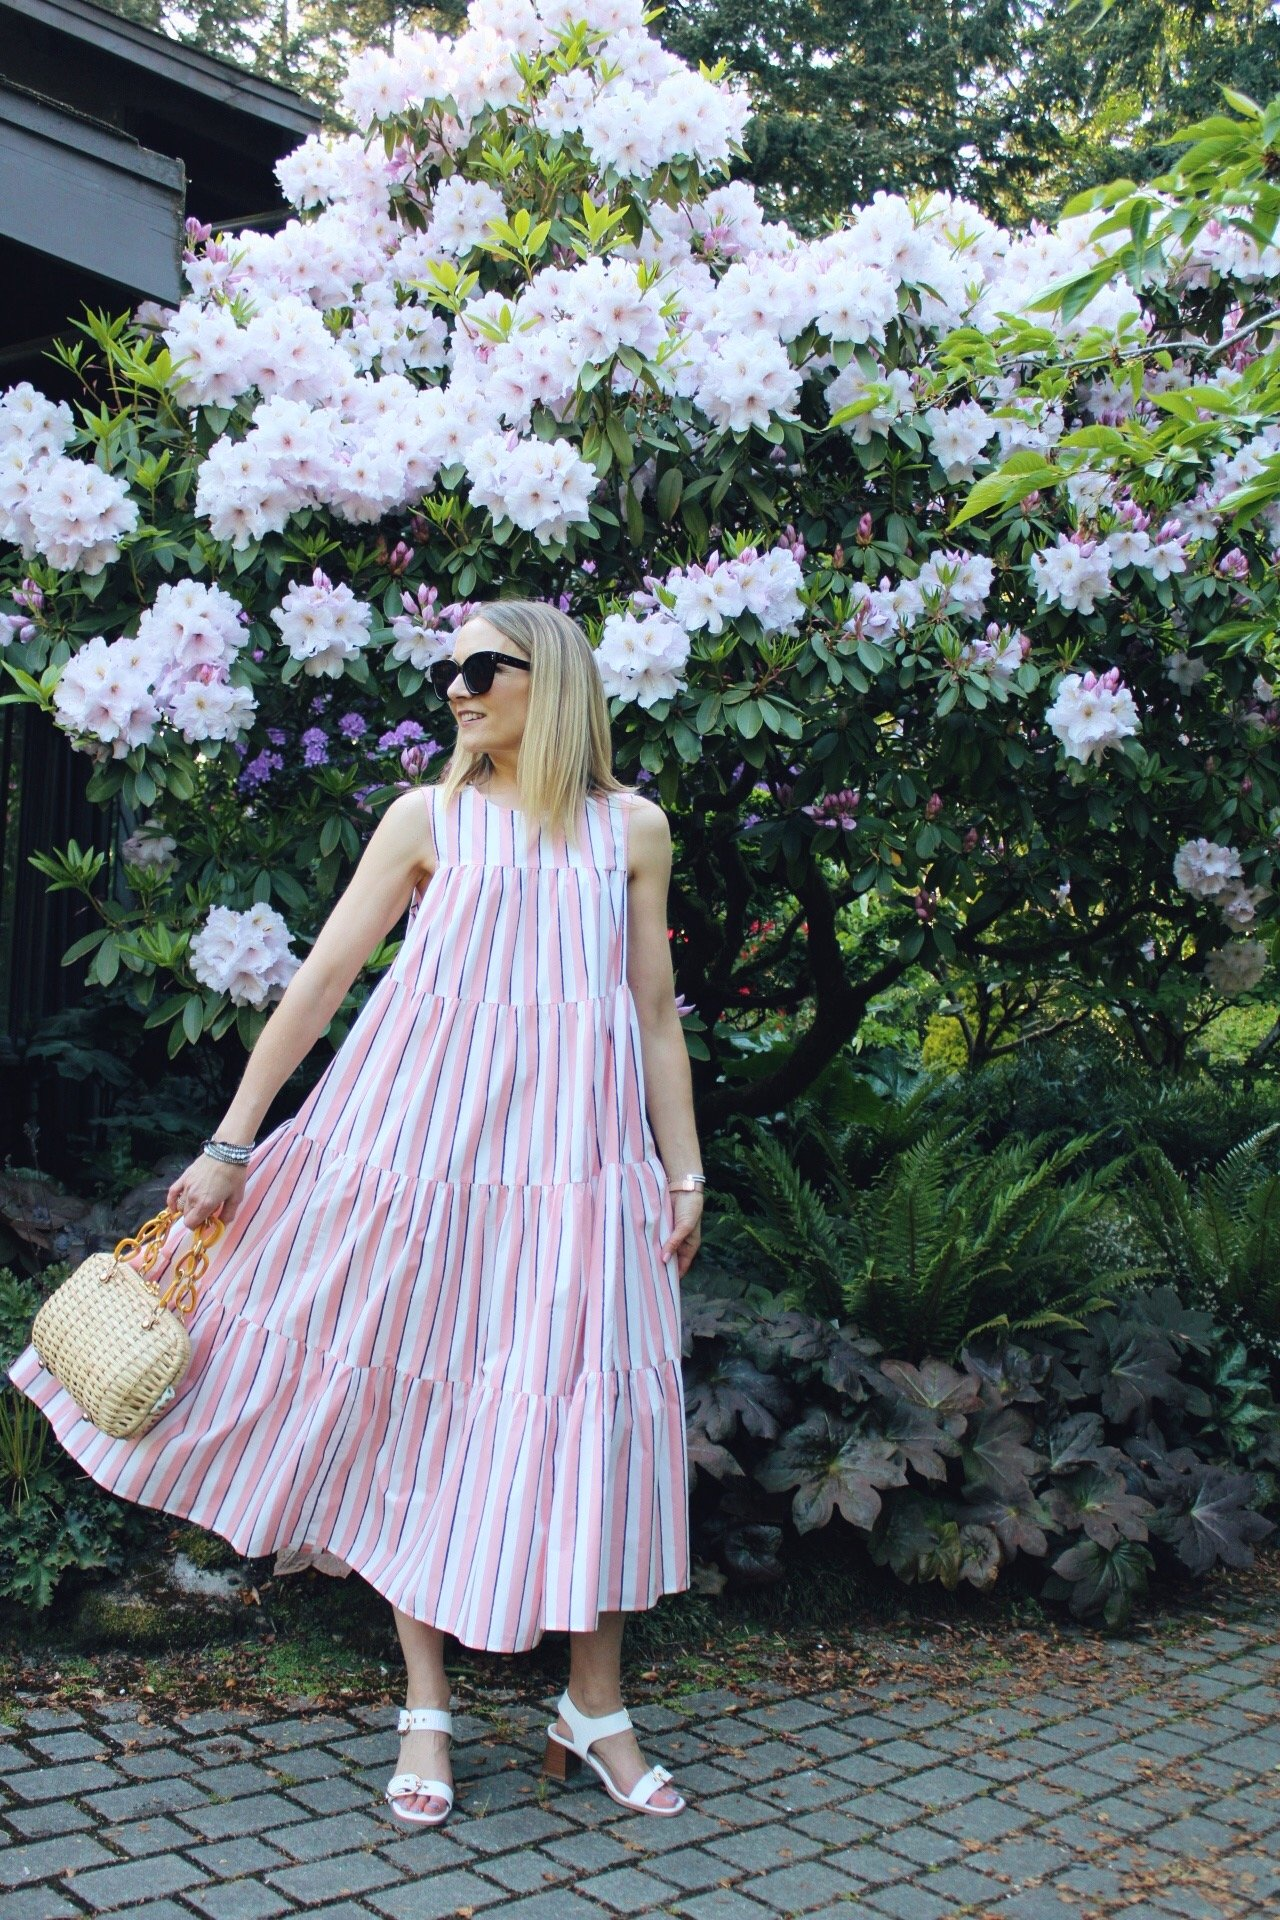 pink midi tiered ruffle sundress with white sandals and wicker bag